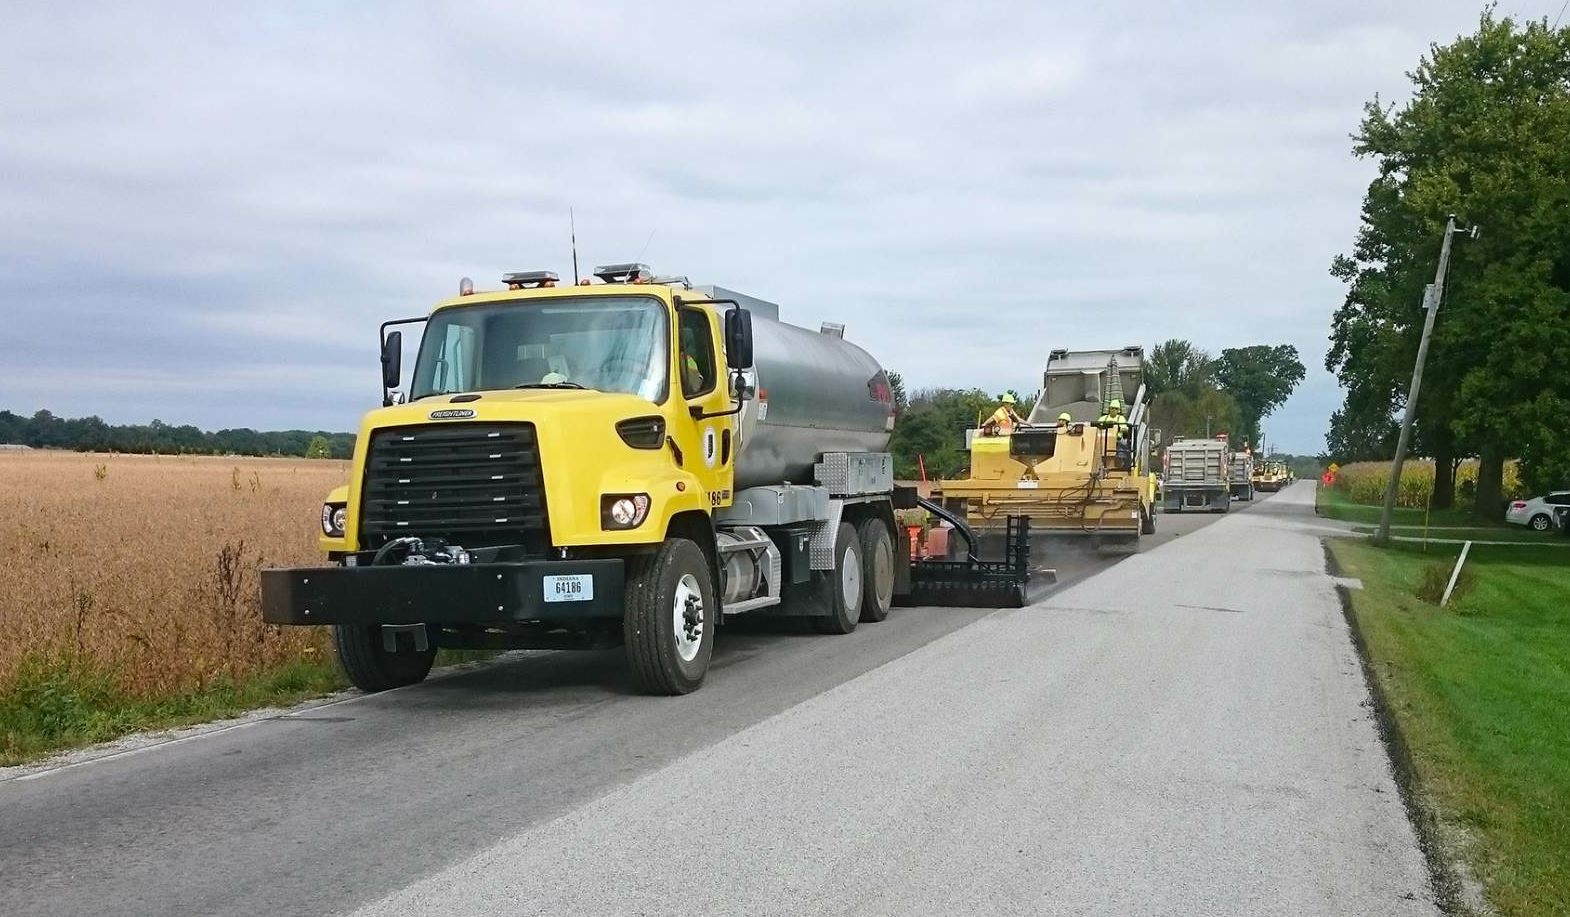 With the Indiana Department of Transportation performing more of its chip seals in-house, leadership wanted to ensure the core crewmembers, sub district managers and unit foremen were trained properly.